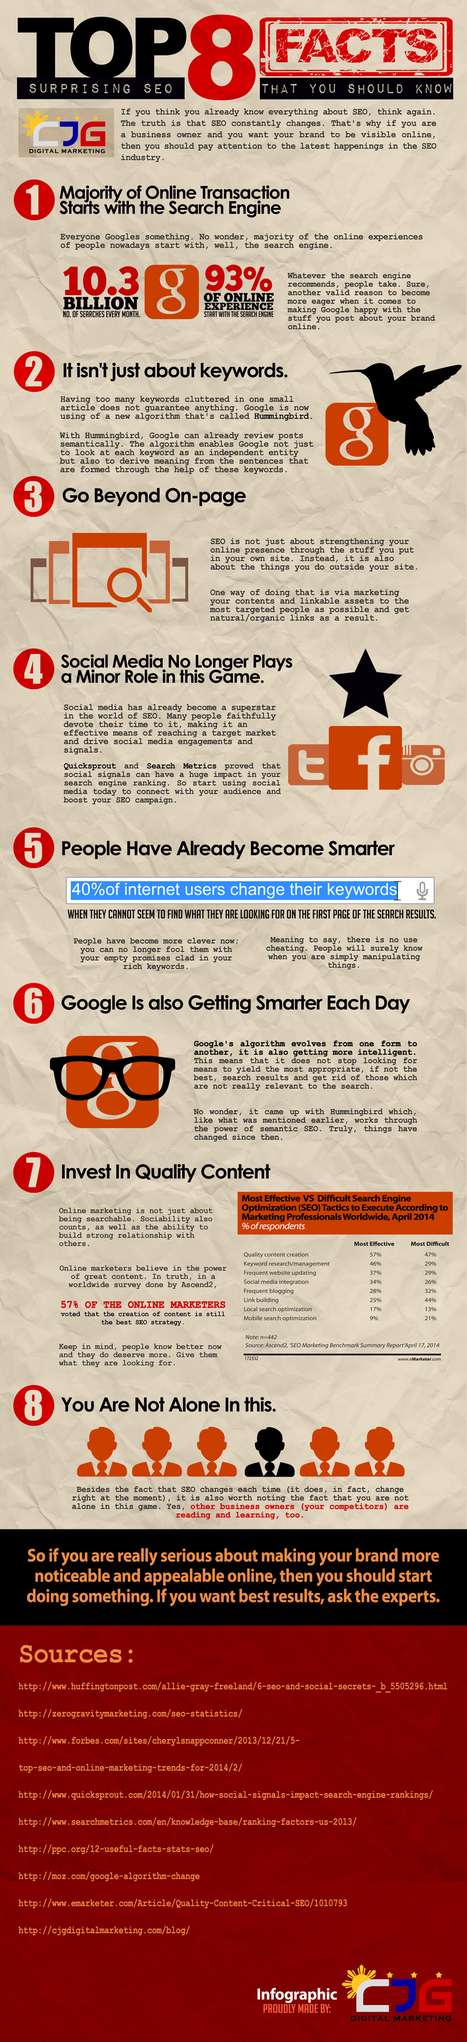 Top 8 Surprising SEO Facts That You Should Know (Infographic) | A DIGITAL WORLD | Scoop.it